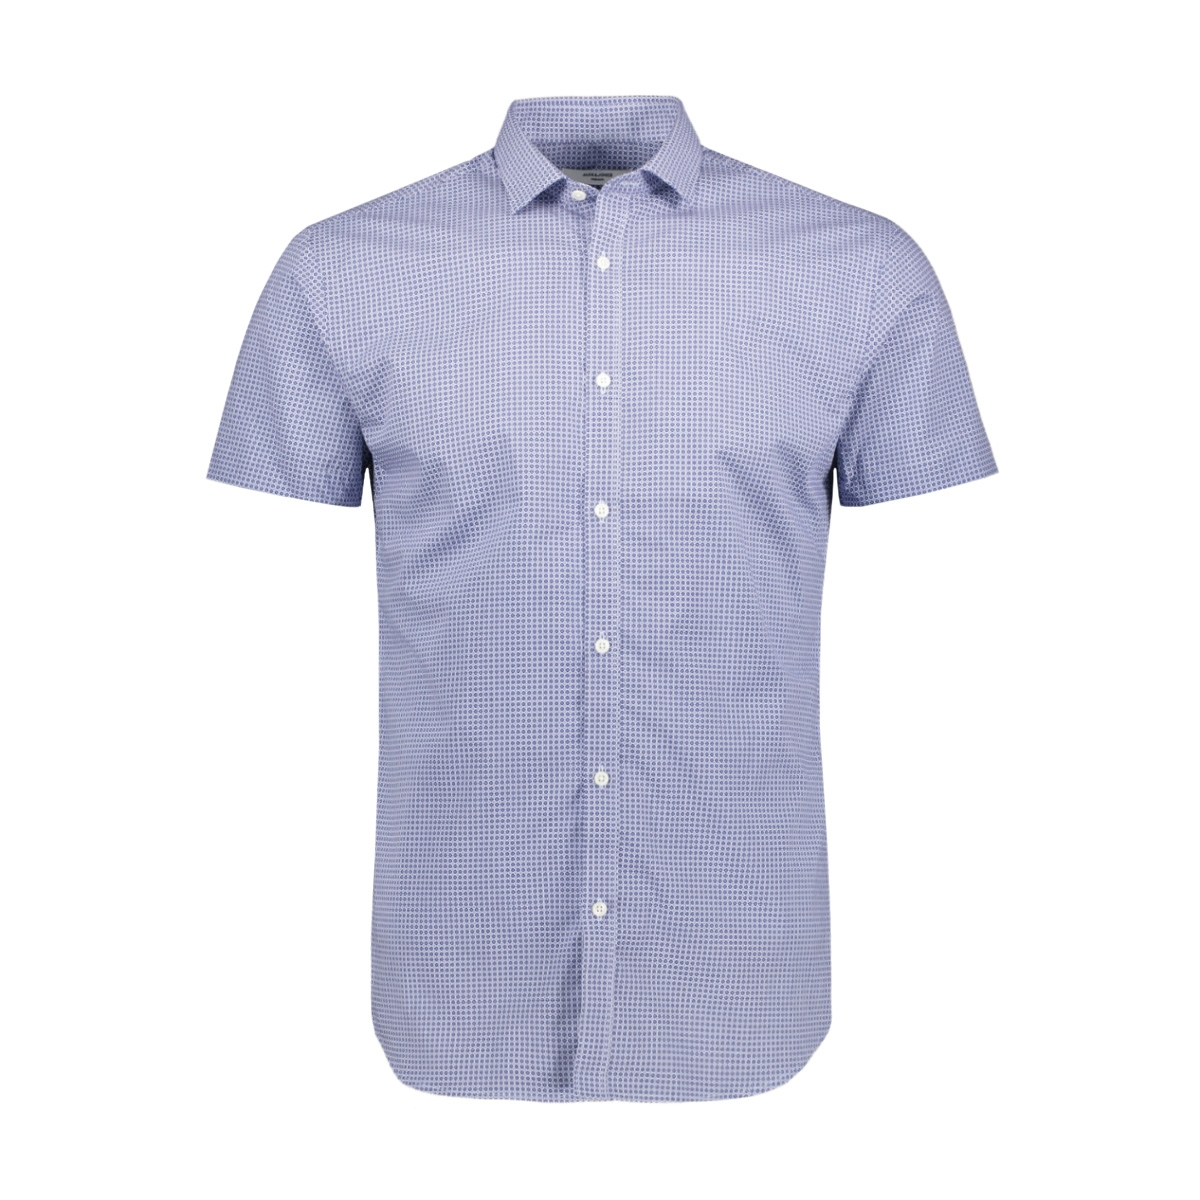 jprblackburn shirt s/s s19 12154075 jack & jones overhemd estate blue/slim fit